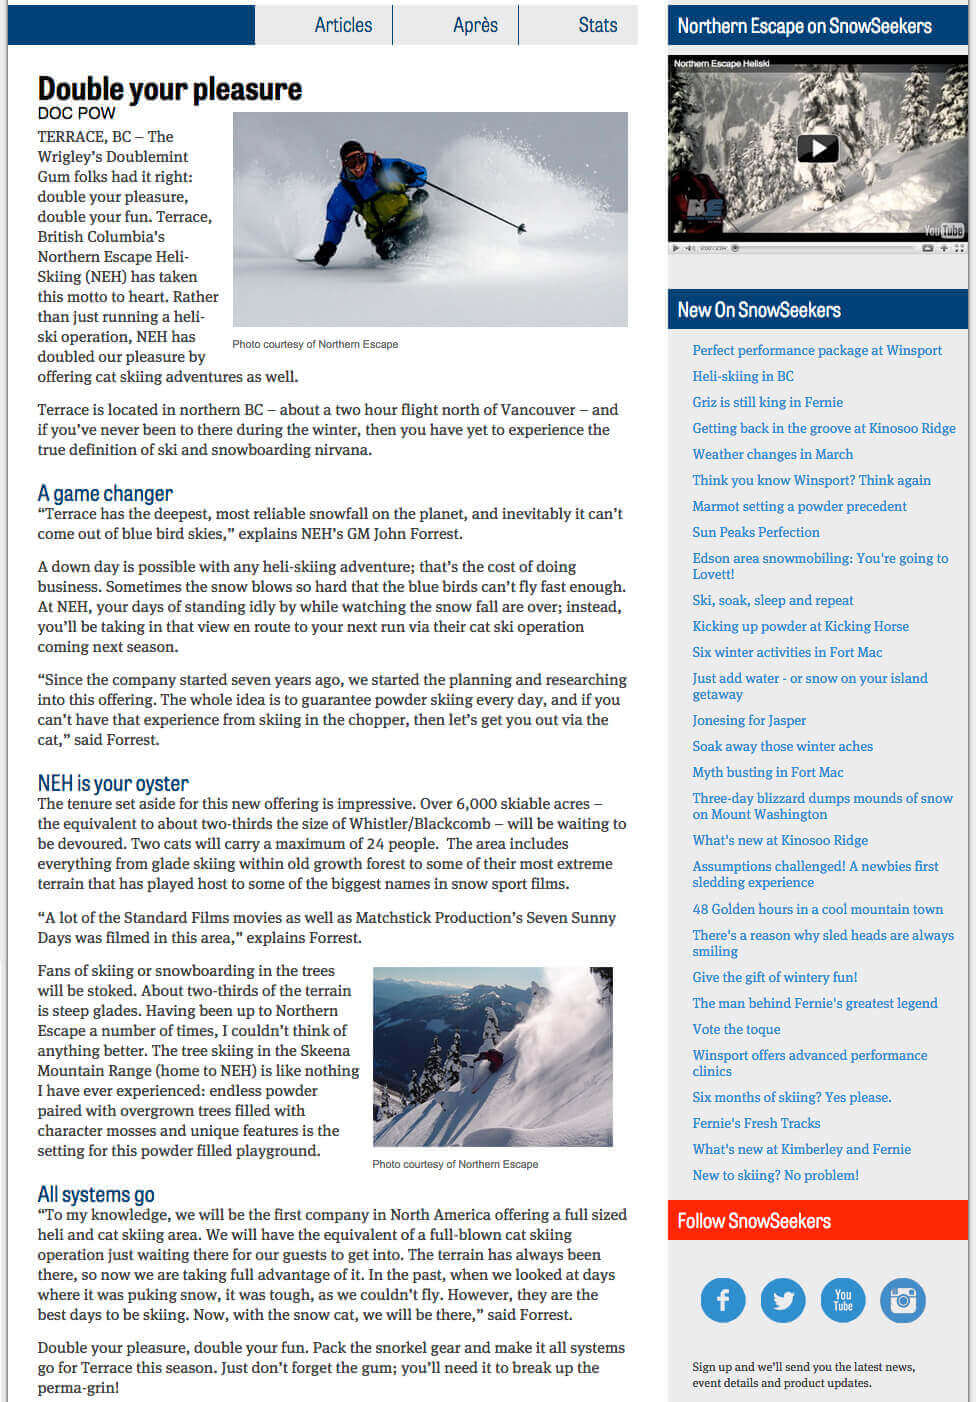 2013 Snowseekers- double your pleasure article